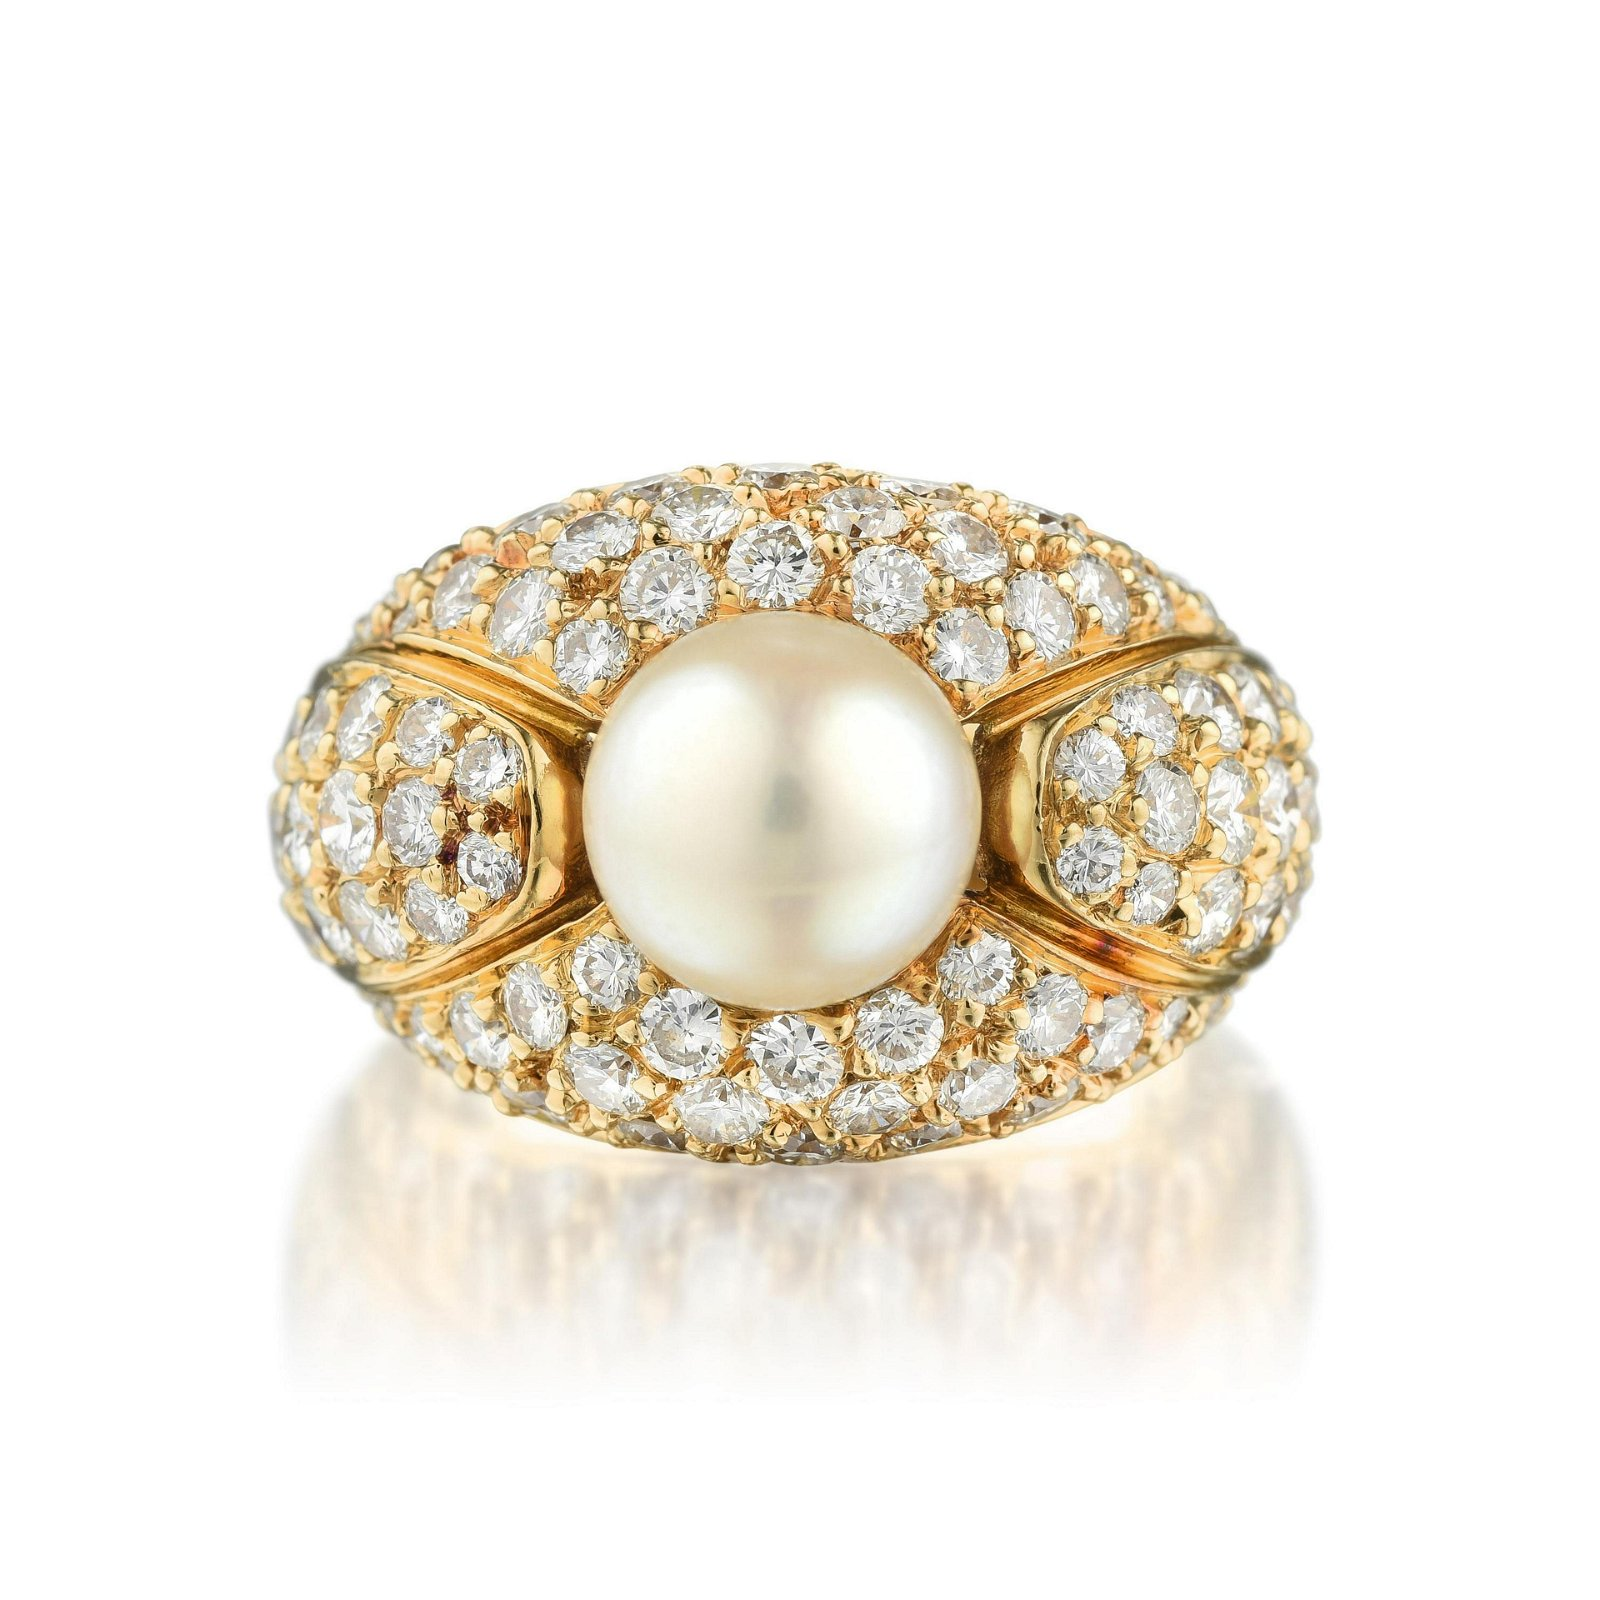 Cartier Cultured Pearl and Diamond Ring